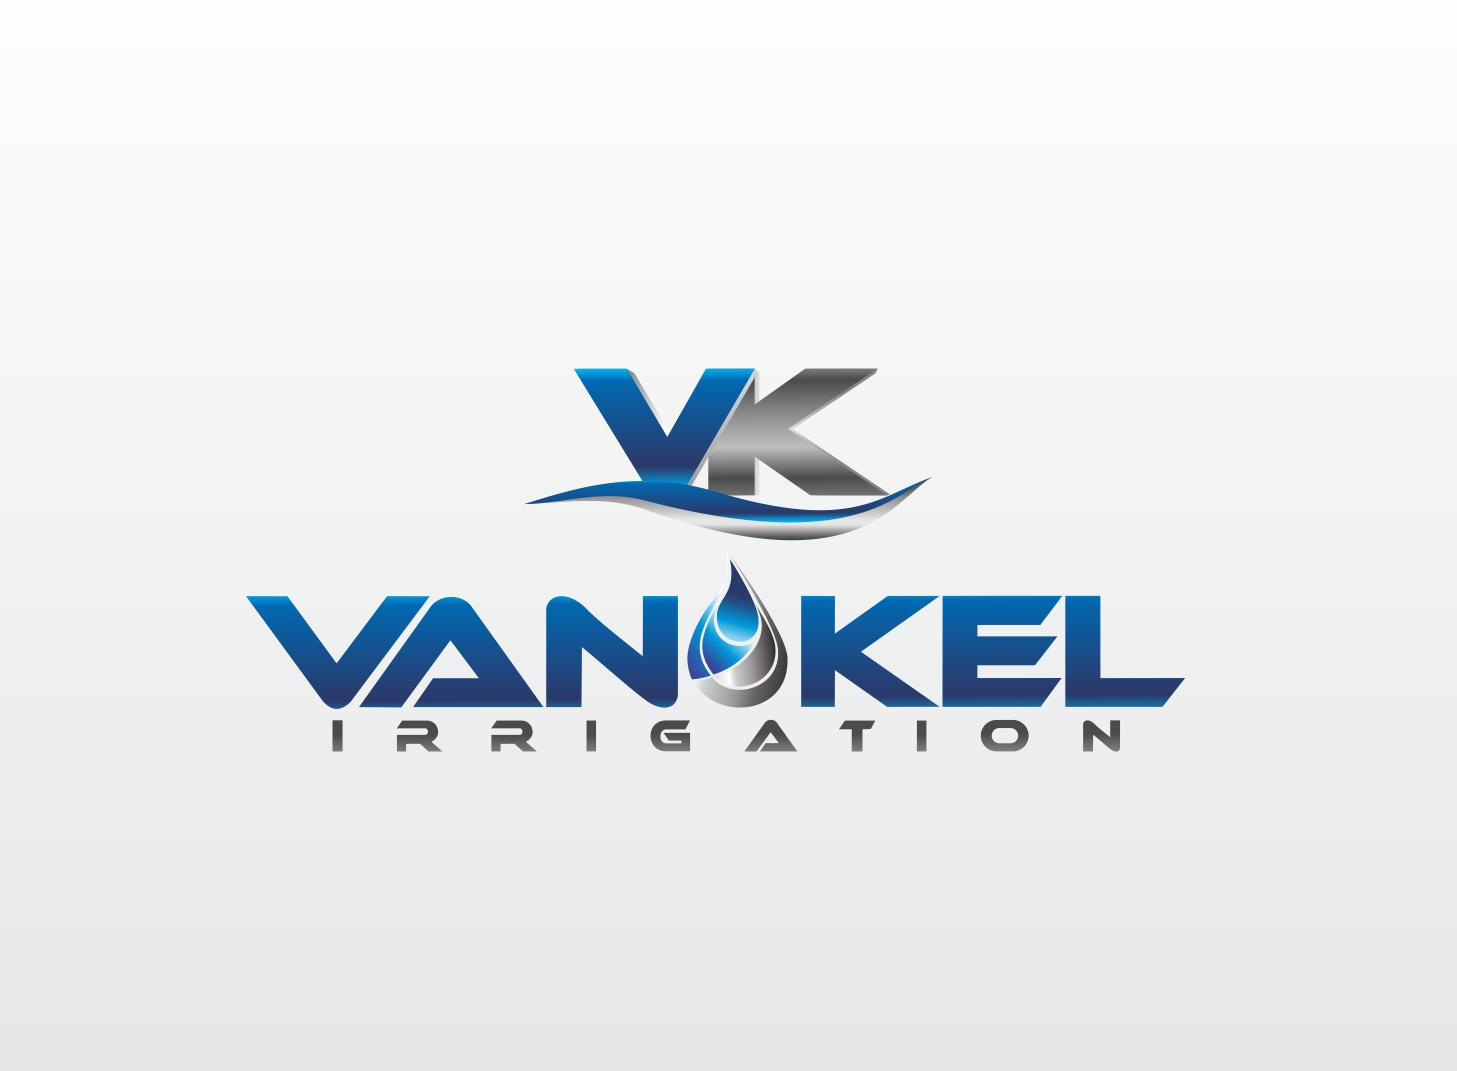 Logo Design by Zdravko Krulj - Entry No. 349 in the Logo Design Contest Van-Kel Irrigation Logo Design.